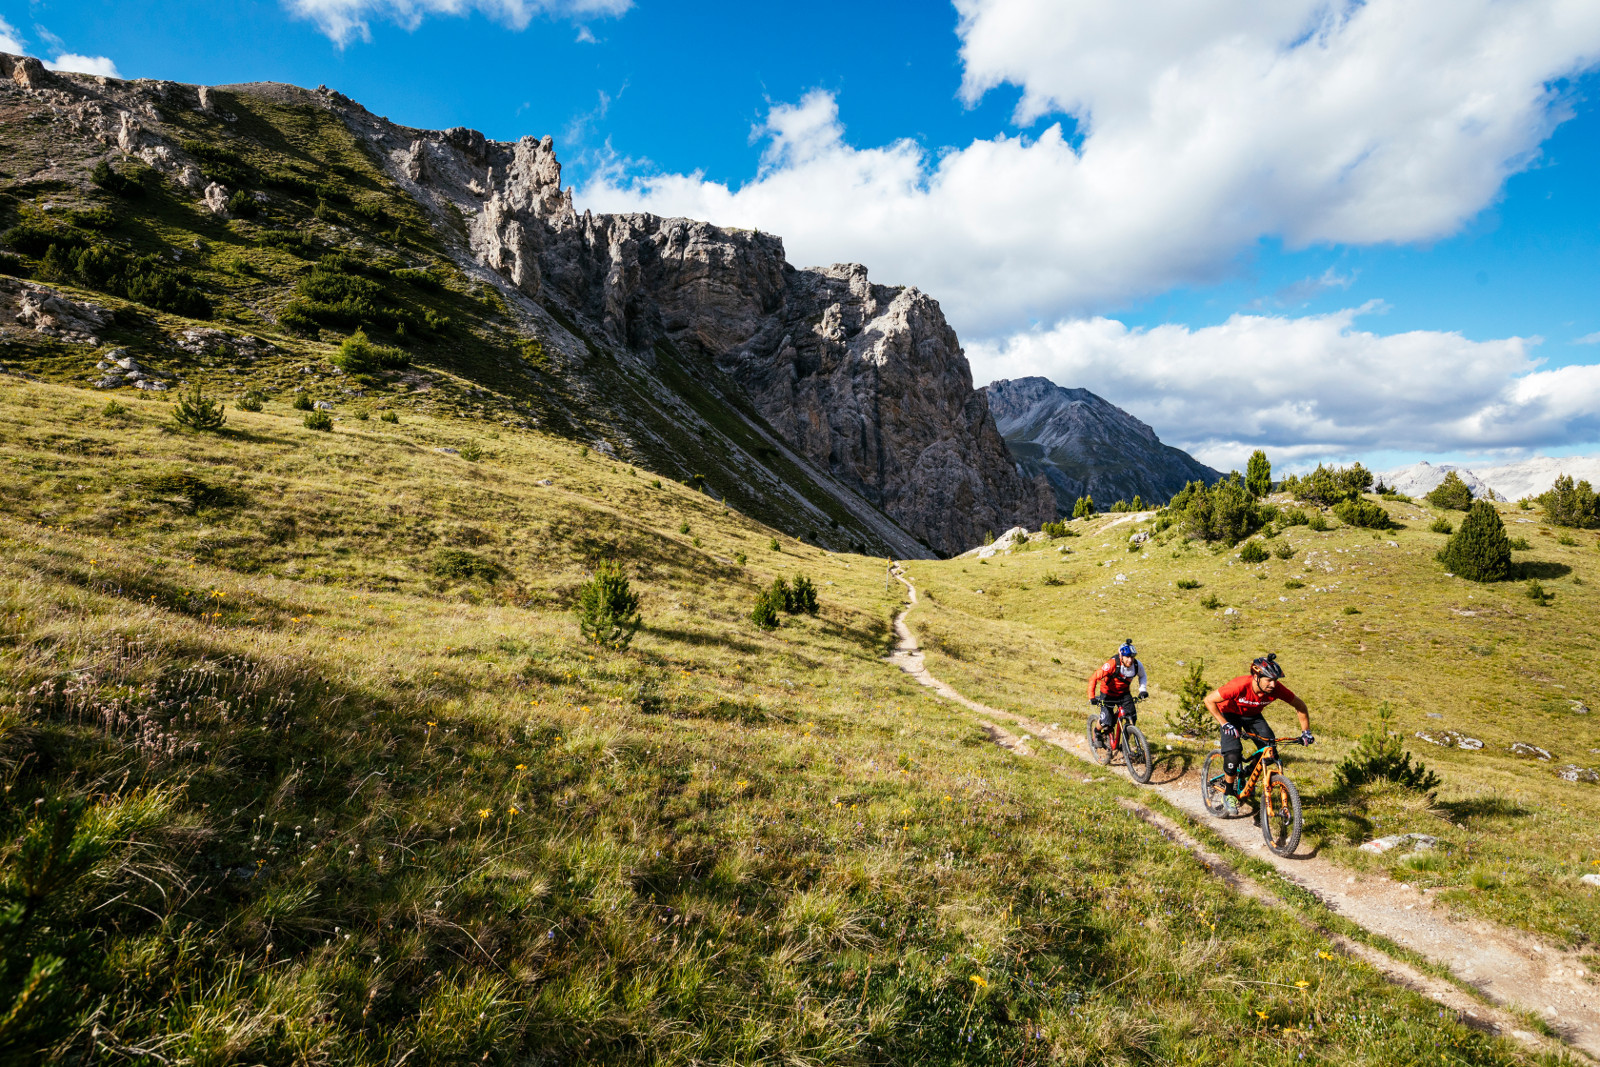 home_of_trails_scuol_samnaun_val_mustair_by_martin_bissig